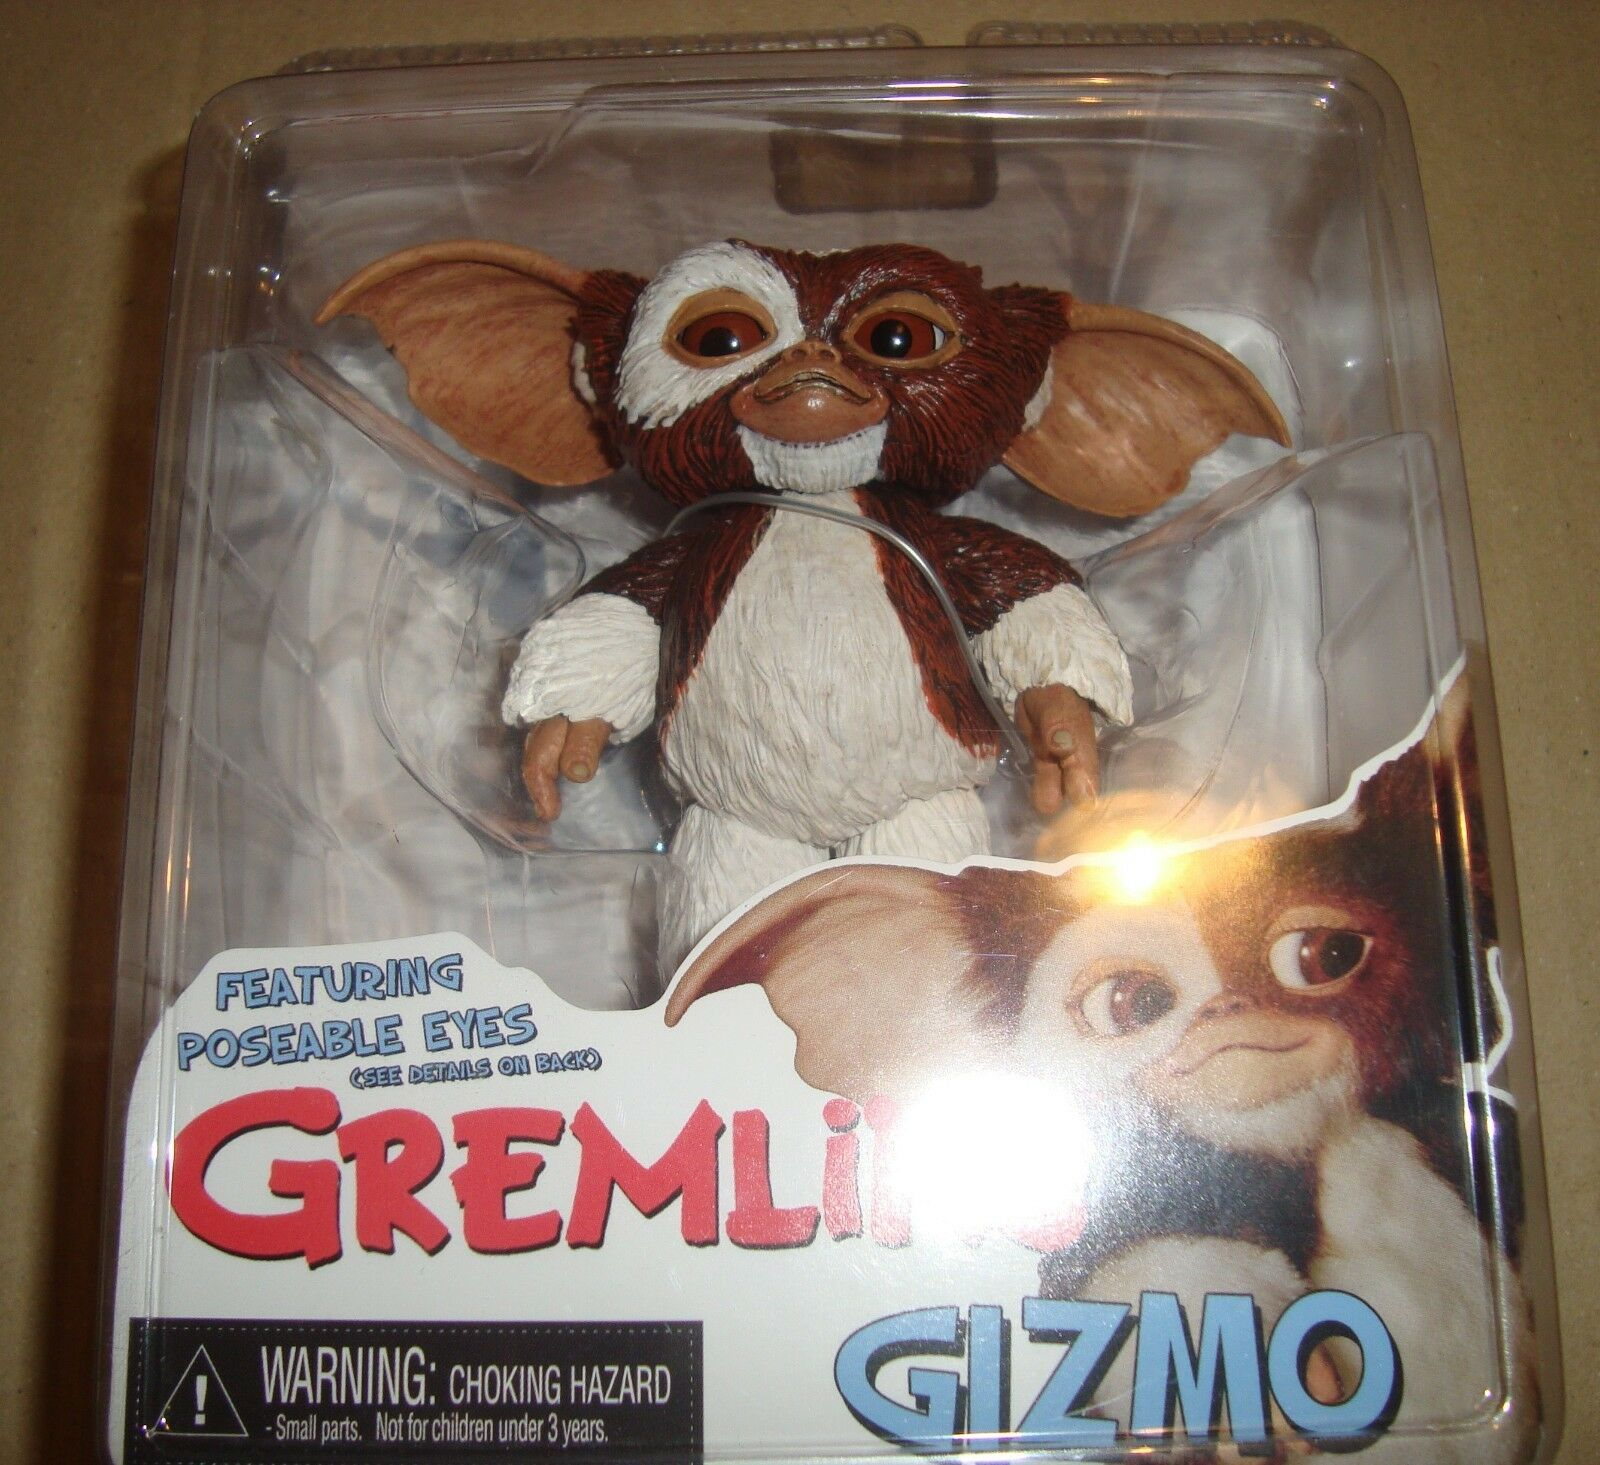 GREMLINS FEATURING POSEABLE EYES SERIES SERIES SERIES 1 GIZMO NECA 2011 2c3cdb